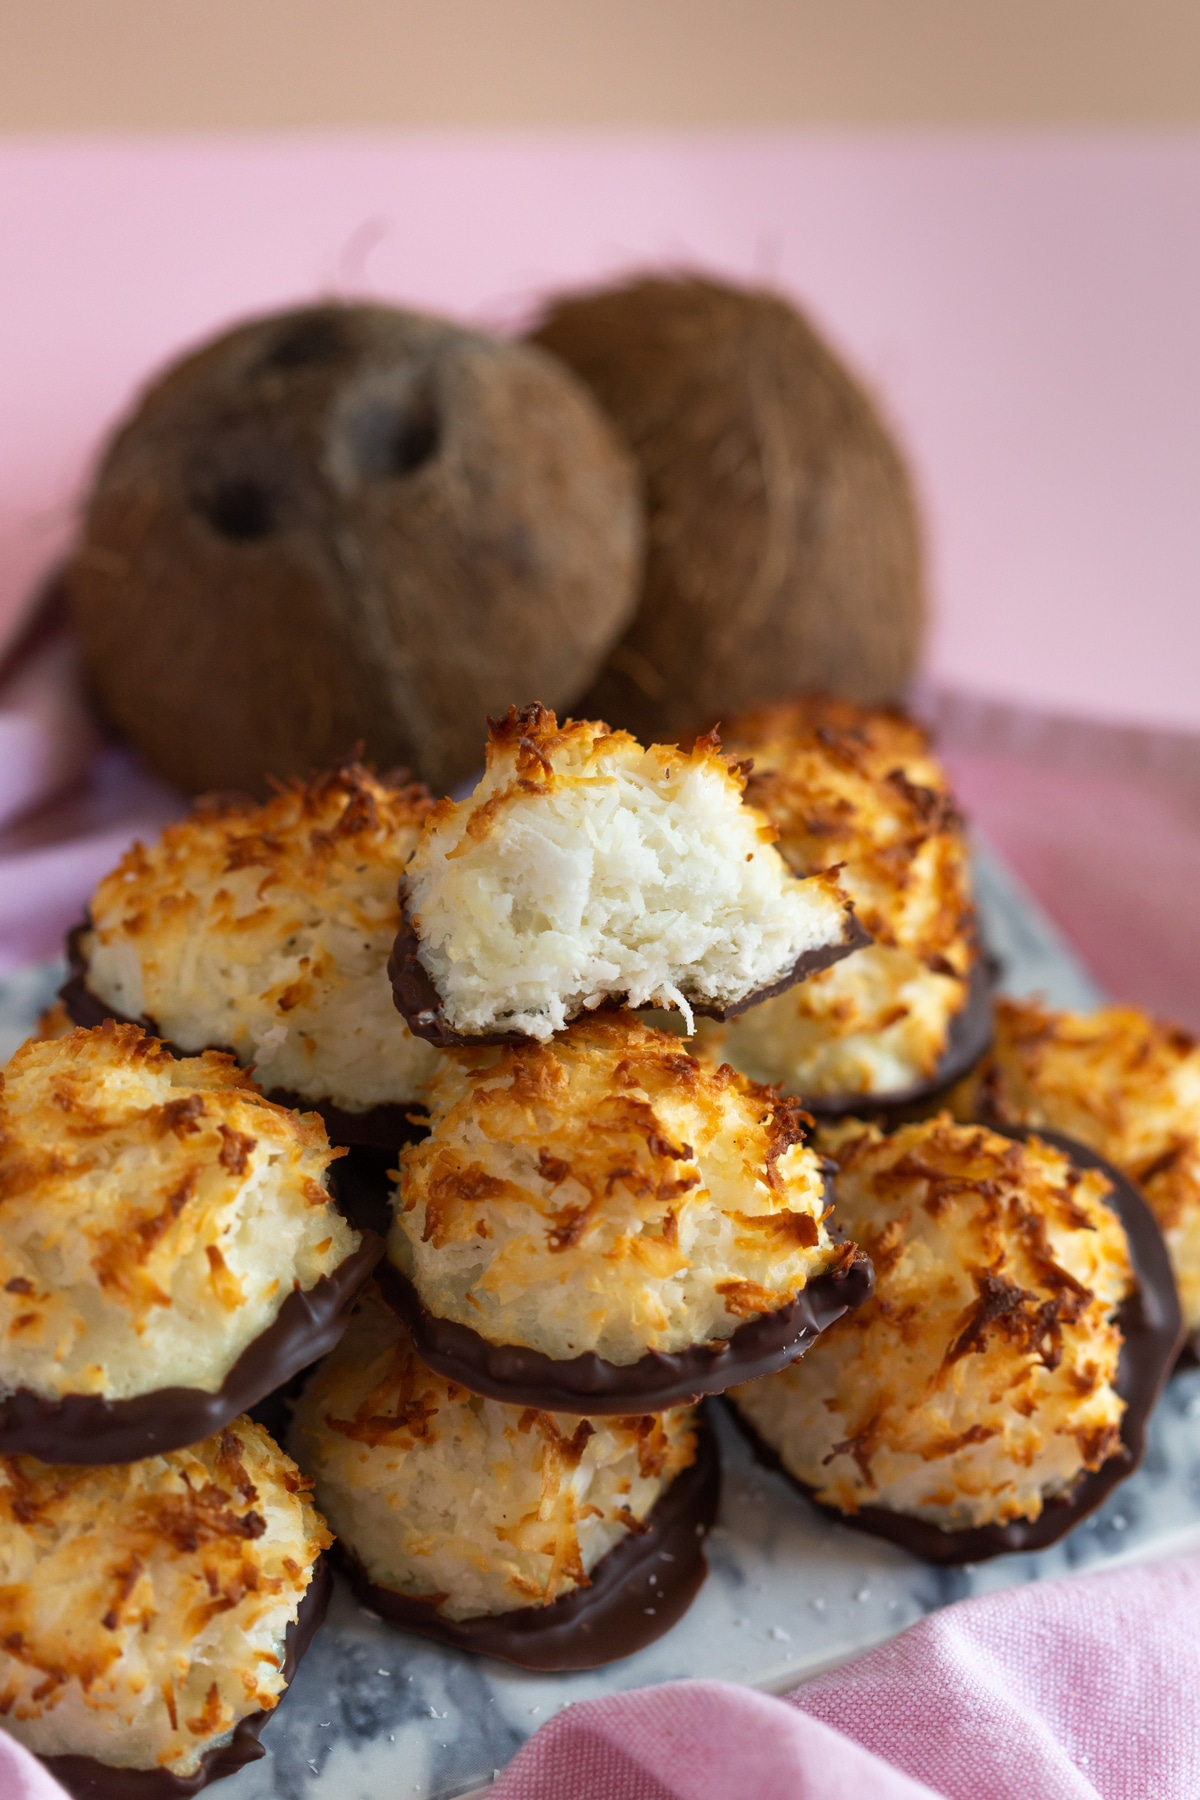 Stack of chocolate-dipped coconut macaroons